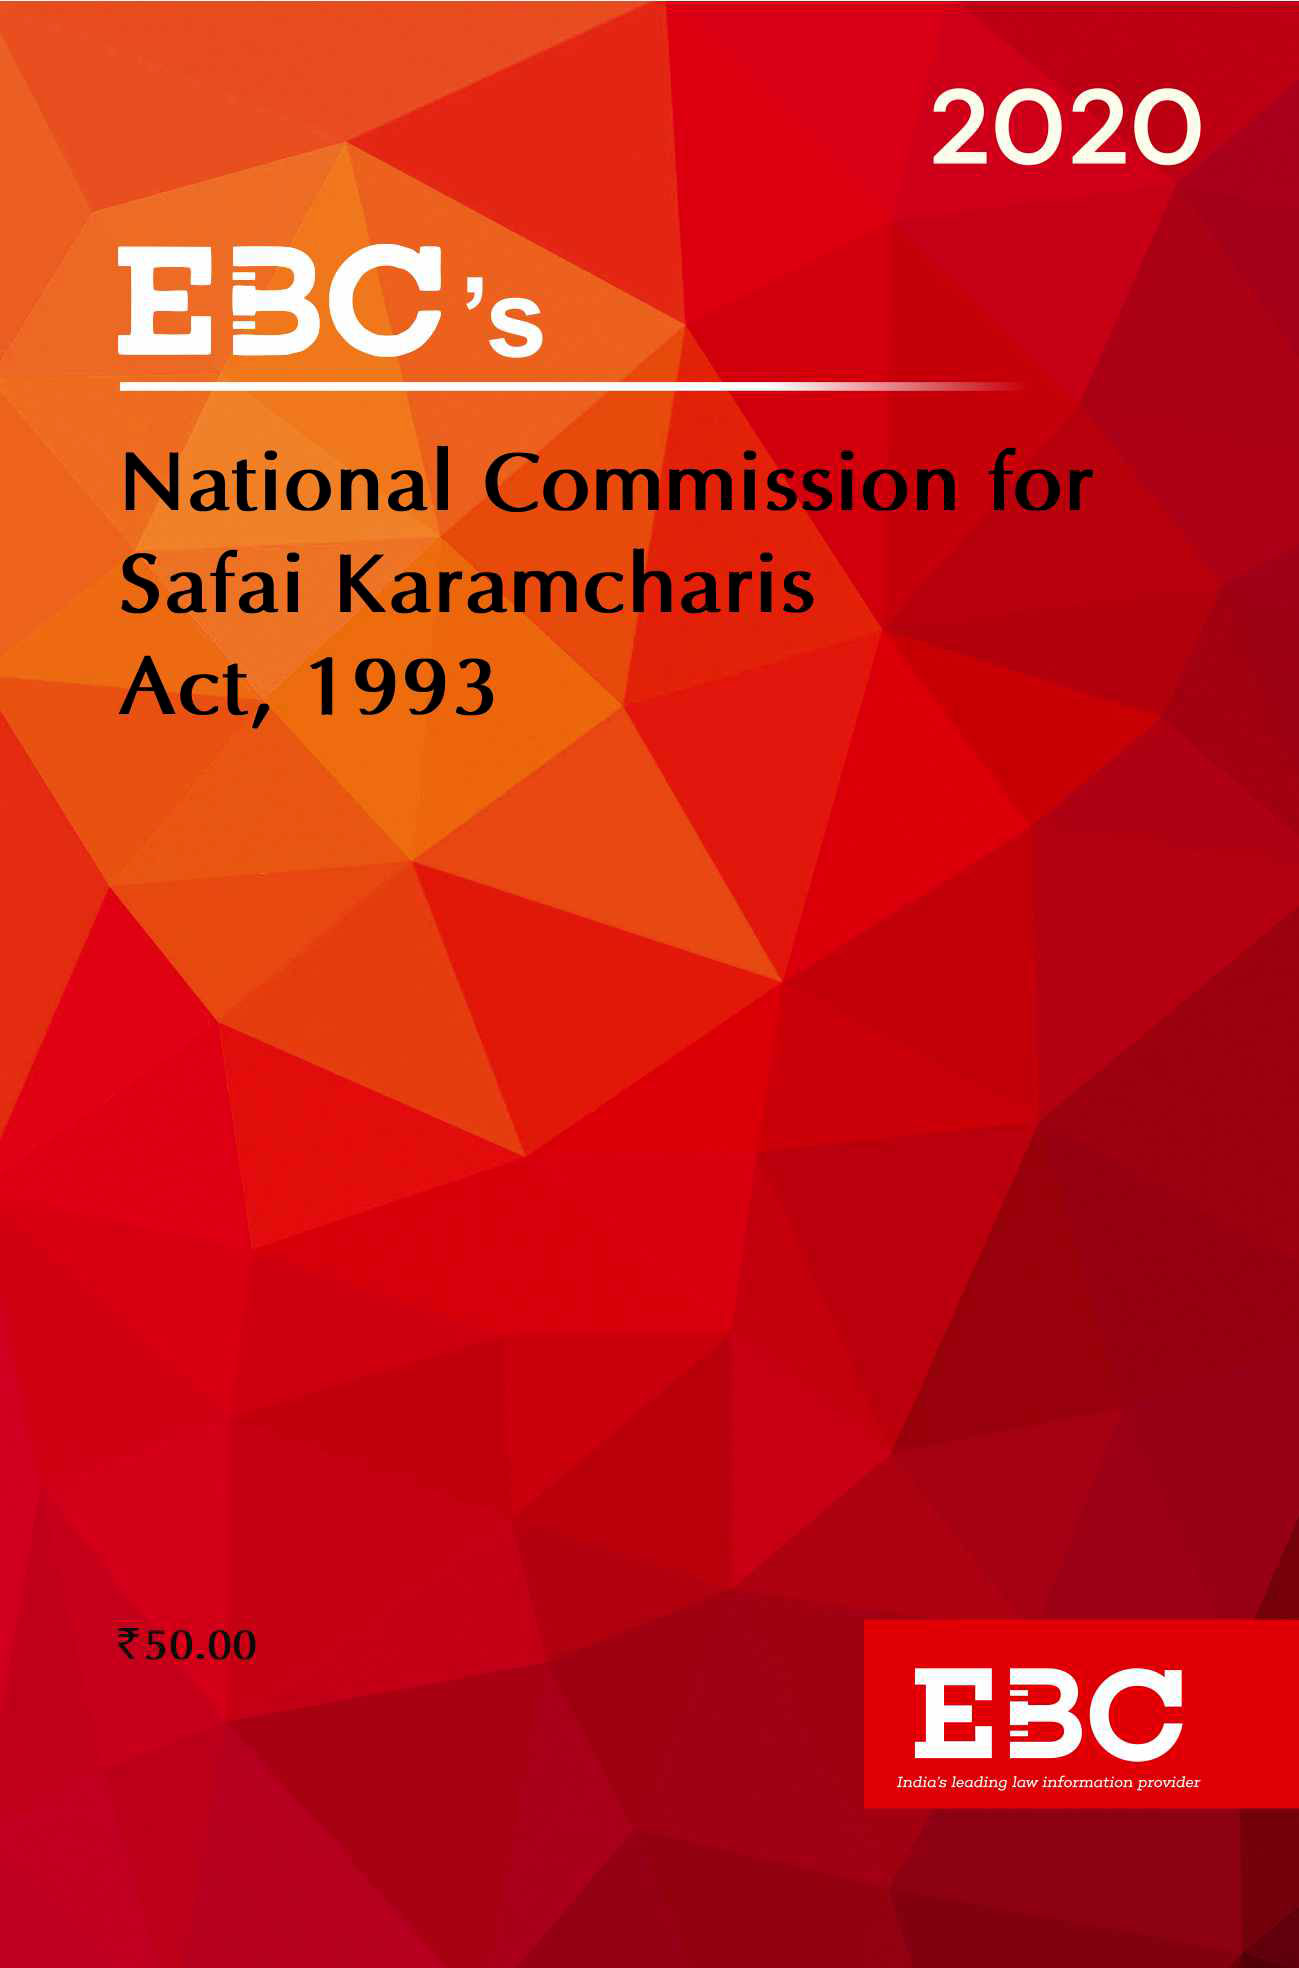 National Commission for Safai Karamcharis Act, 1993